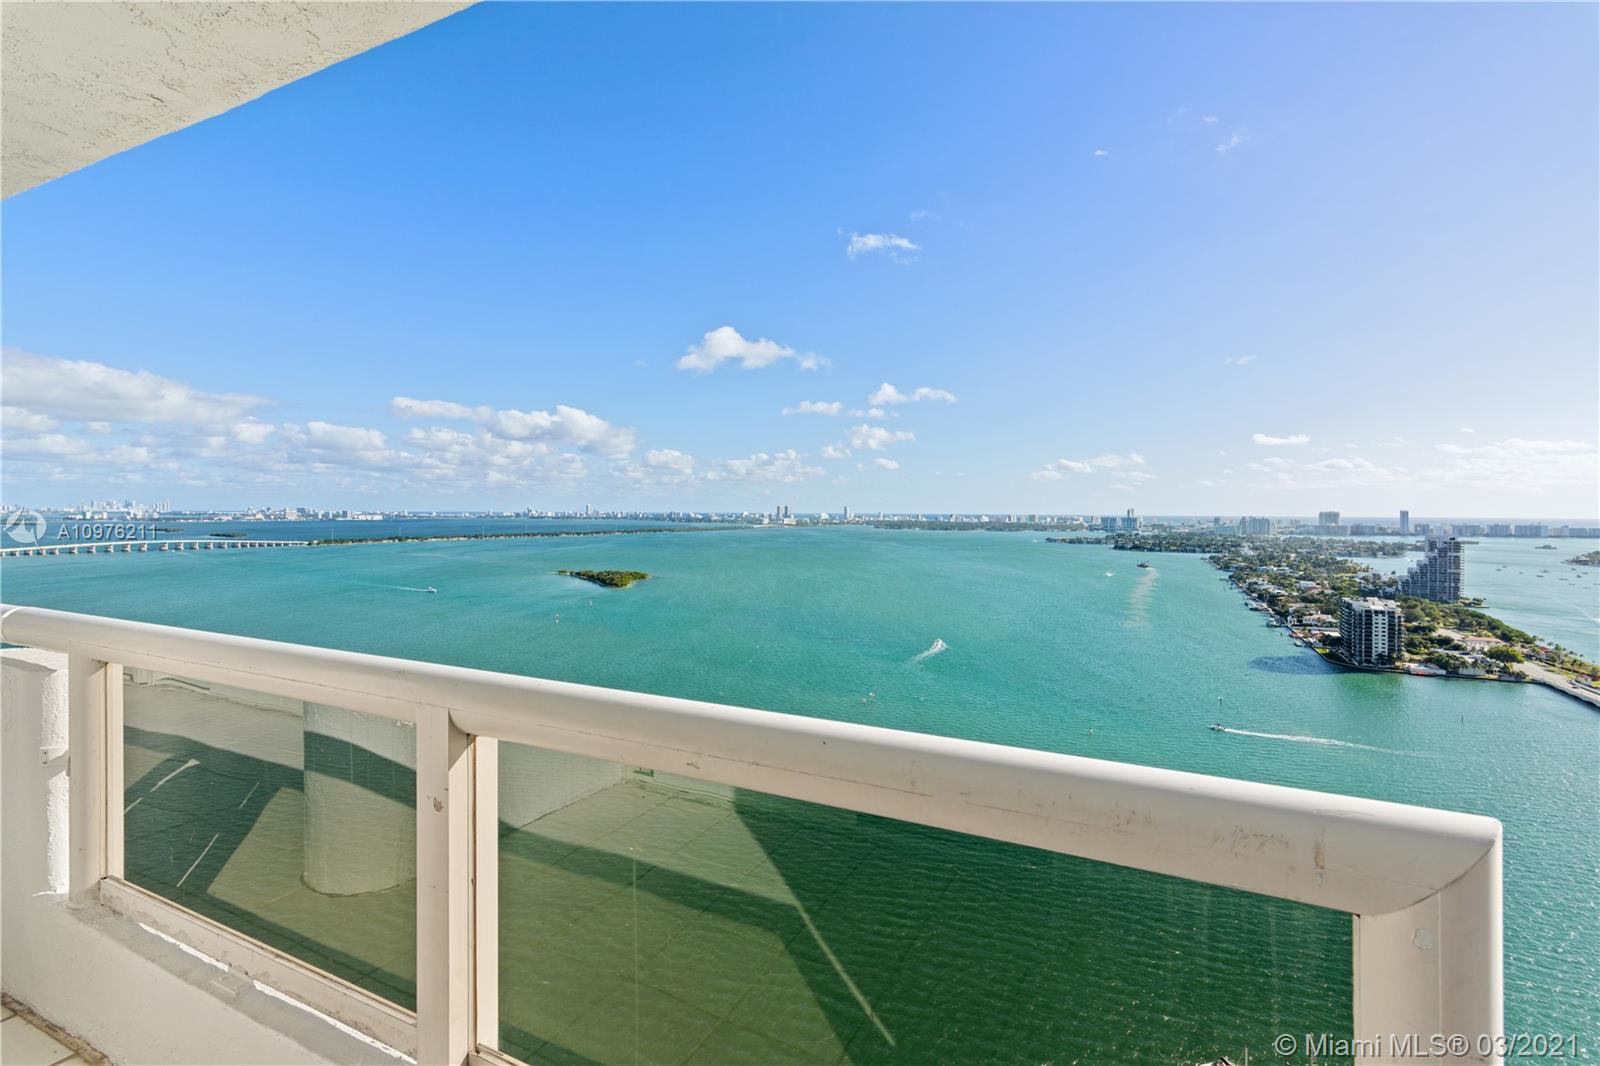 THIS PENTHOUSE IN THE SKY HAS DIRECT UNOBSTRUCTED BAY VIEWS OF BISCAYNE BAY, PORT OF MIAMI, THE VENETIAN ISLE AND MIAMI BEACH. THE GRAND CONDOMINIUM IS LOCATED IN THE HEART OF THE MIAMI ARTS AND ENTERTAINMENT AREA AND IS PART OF THE EDGEWATER DISTRICT. IT IS JUST BLOCKS FROM THE ADRIENNE ARSHT CENTER.  THE GRAND IS A FULL SERVICE BUILDING, COMPLETE WITH A FULL GYM, 5 RESTAURANTS, A MARKET, PHARMACY, JET SKI RENTALS AND SO MUCH MORE! THIS SPACIOUS 2 BEDROOM CONDO HAS AN ADDITIONAL ROOM THAT COULD BE USED AS A SMALL OFFICE. SHOWS LIGHT AND BRIGHT AND VERY EASY TO SHOW.